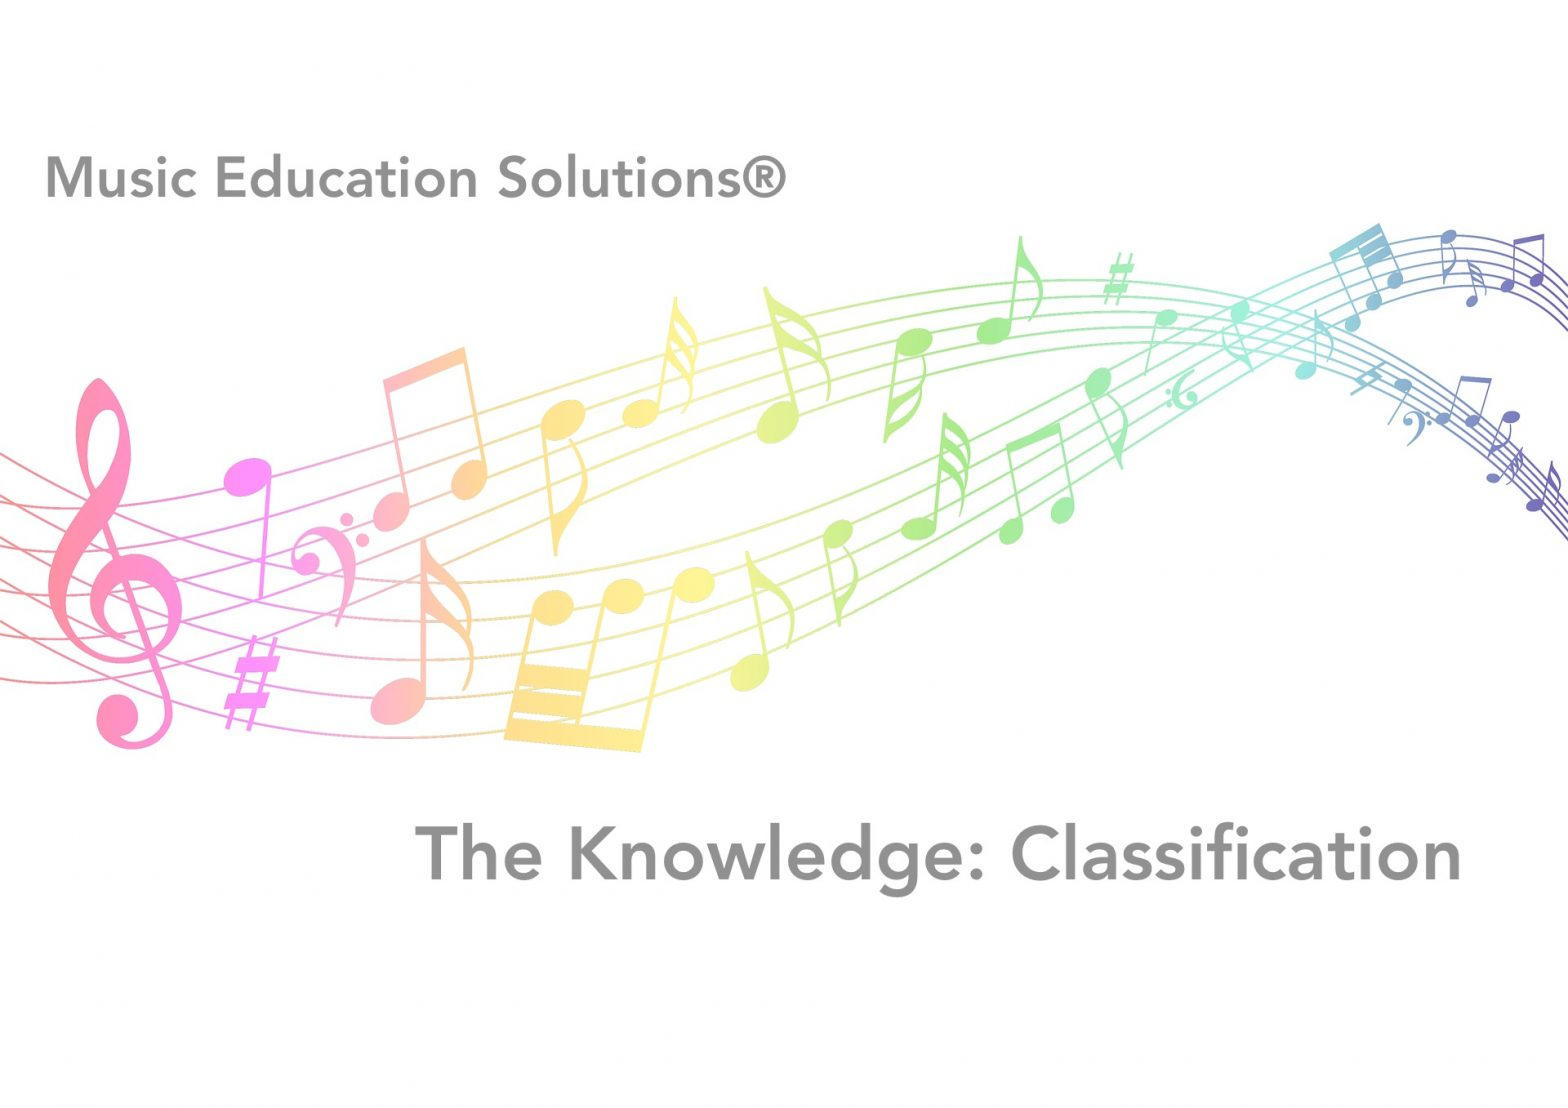 The Knowledge: Classification